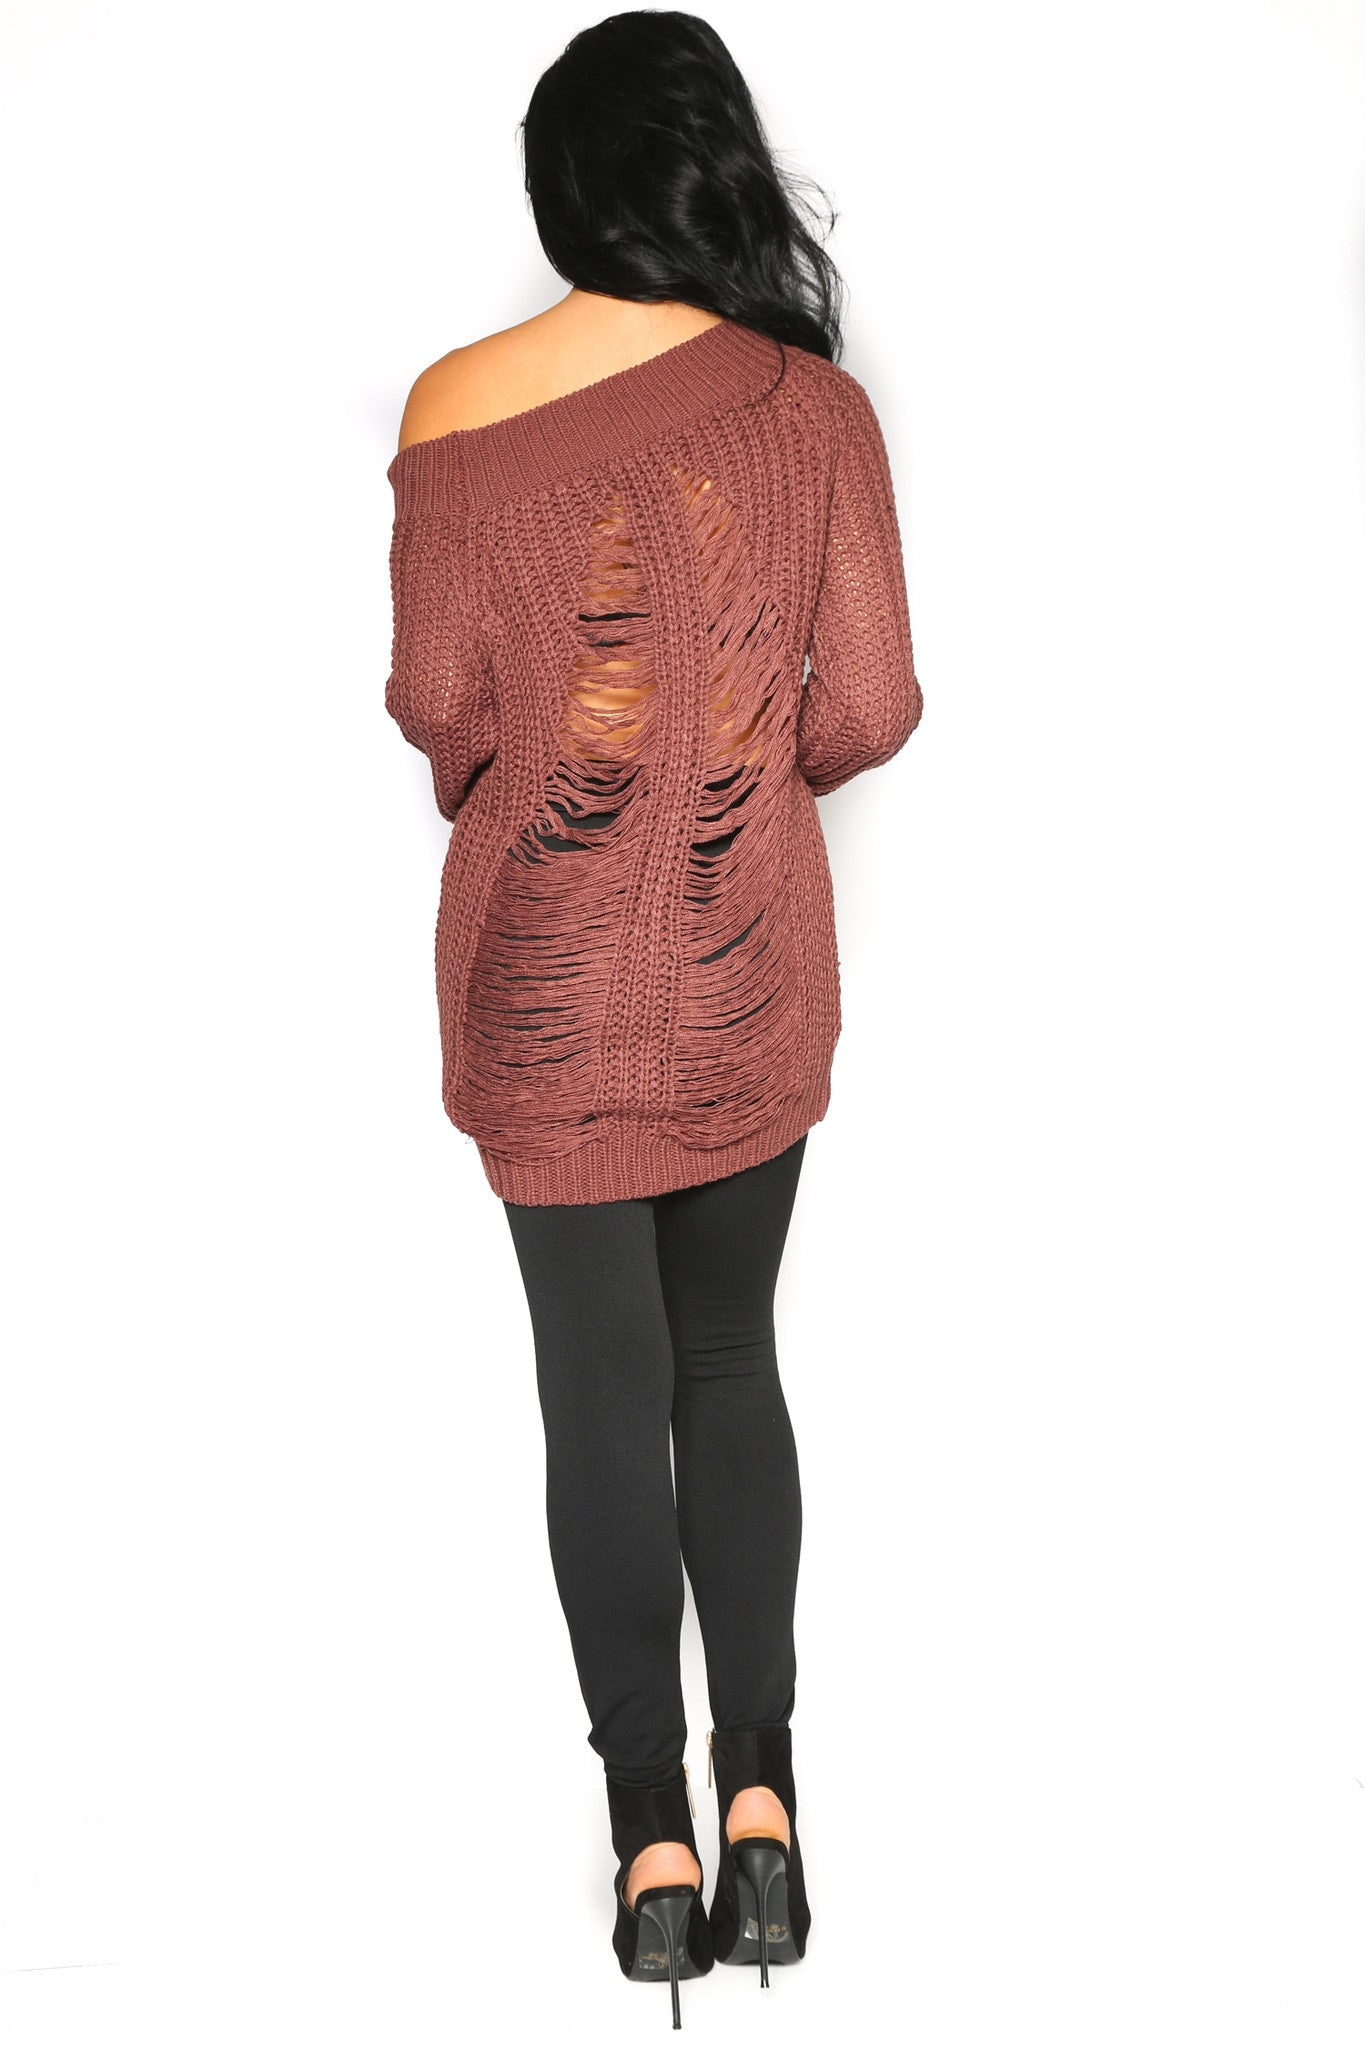 VICTORIA SWEATER - Glam Envy - 3